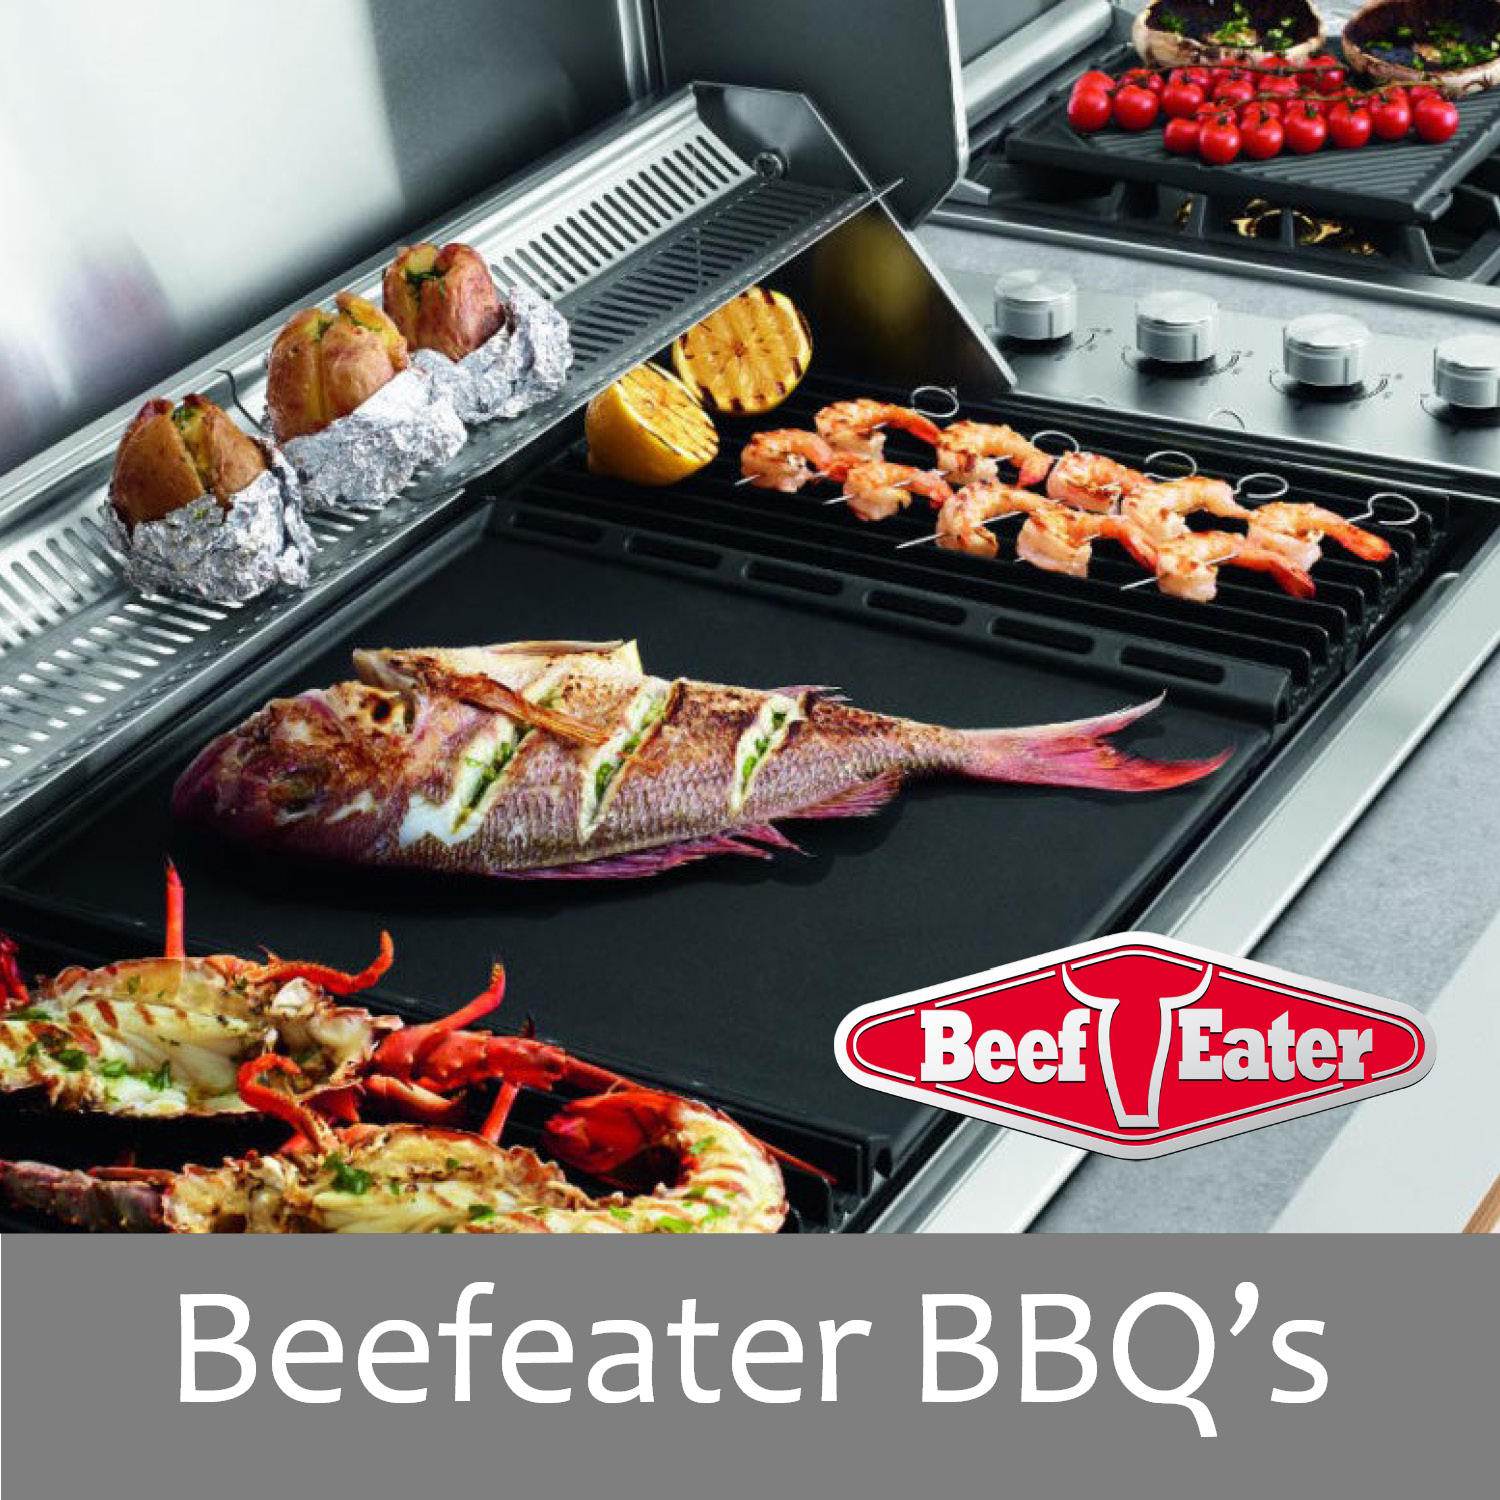 Beefeater BBQs